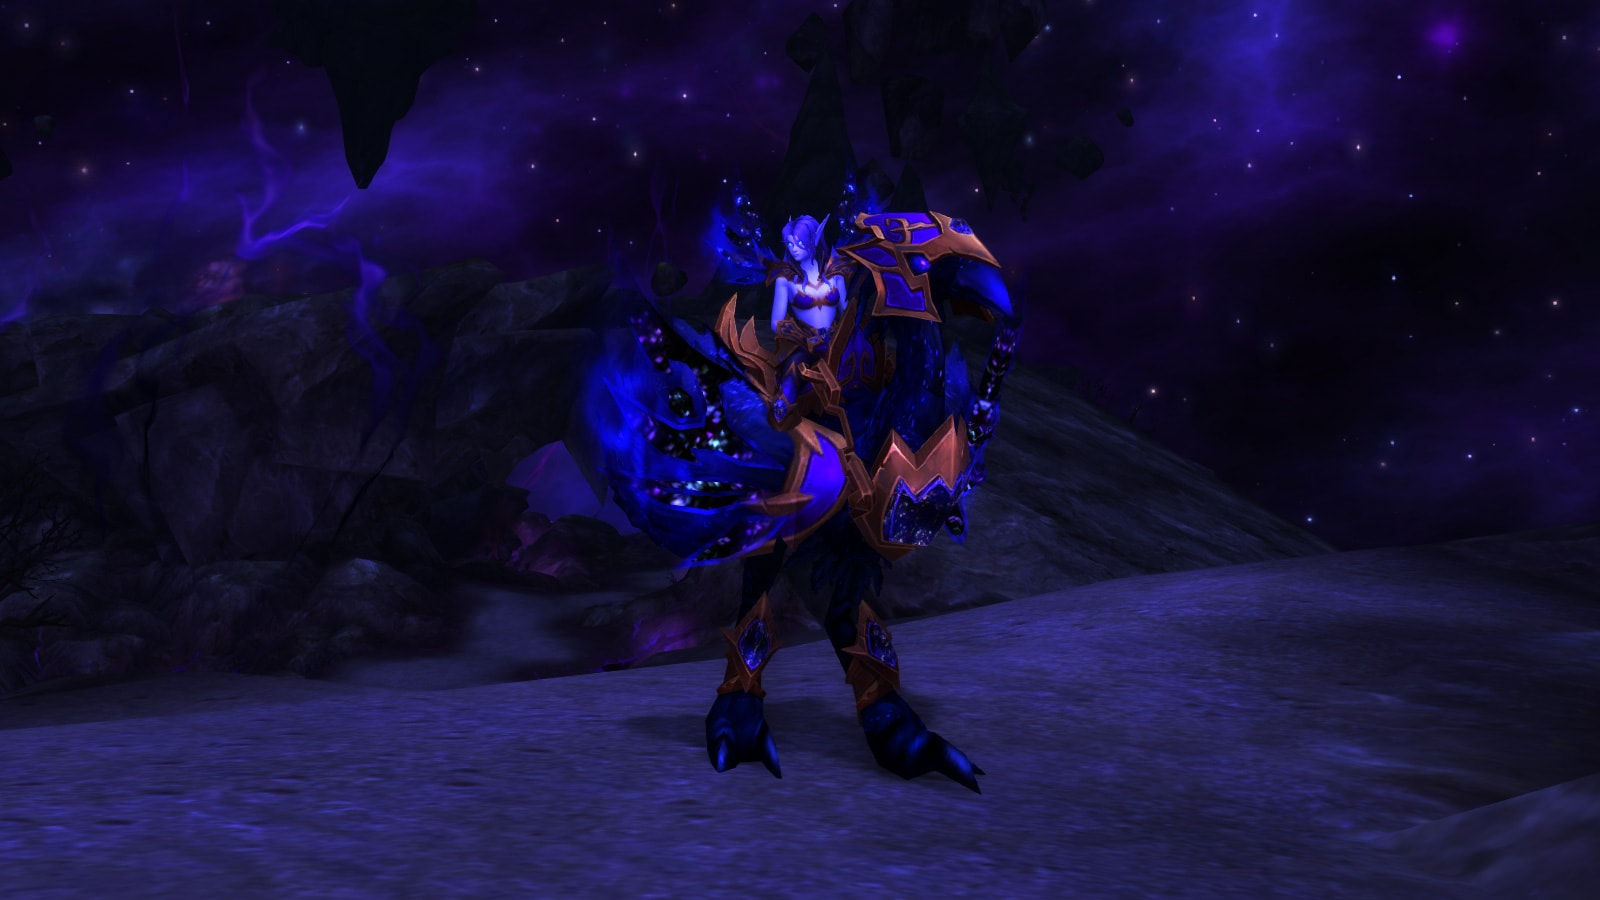 Void Elves Allied Race Guide Download link #1 www.mediafire.com/file/44p0r21… blender 2.78 password: void elves allied race guide